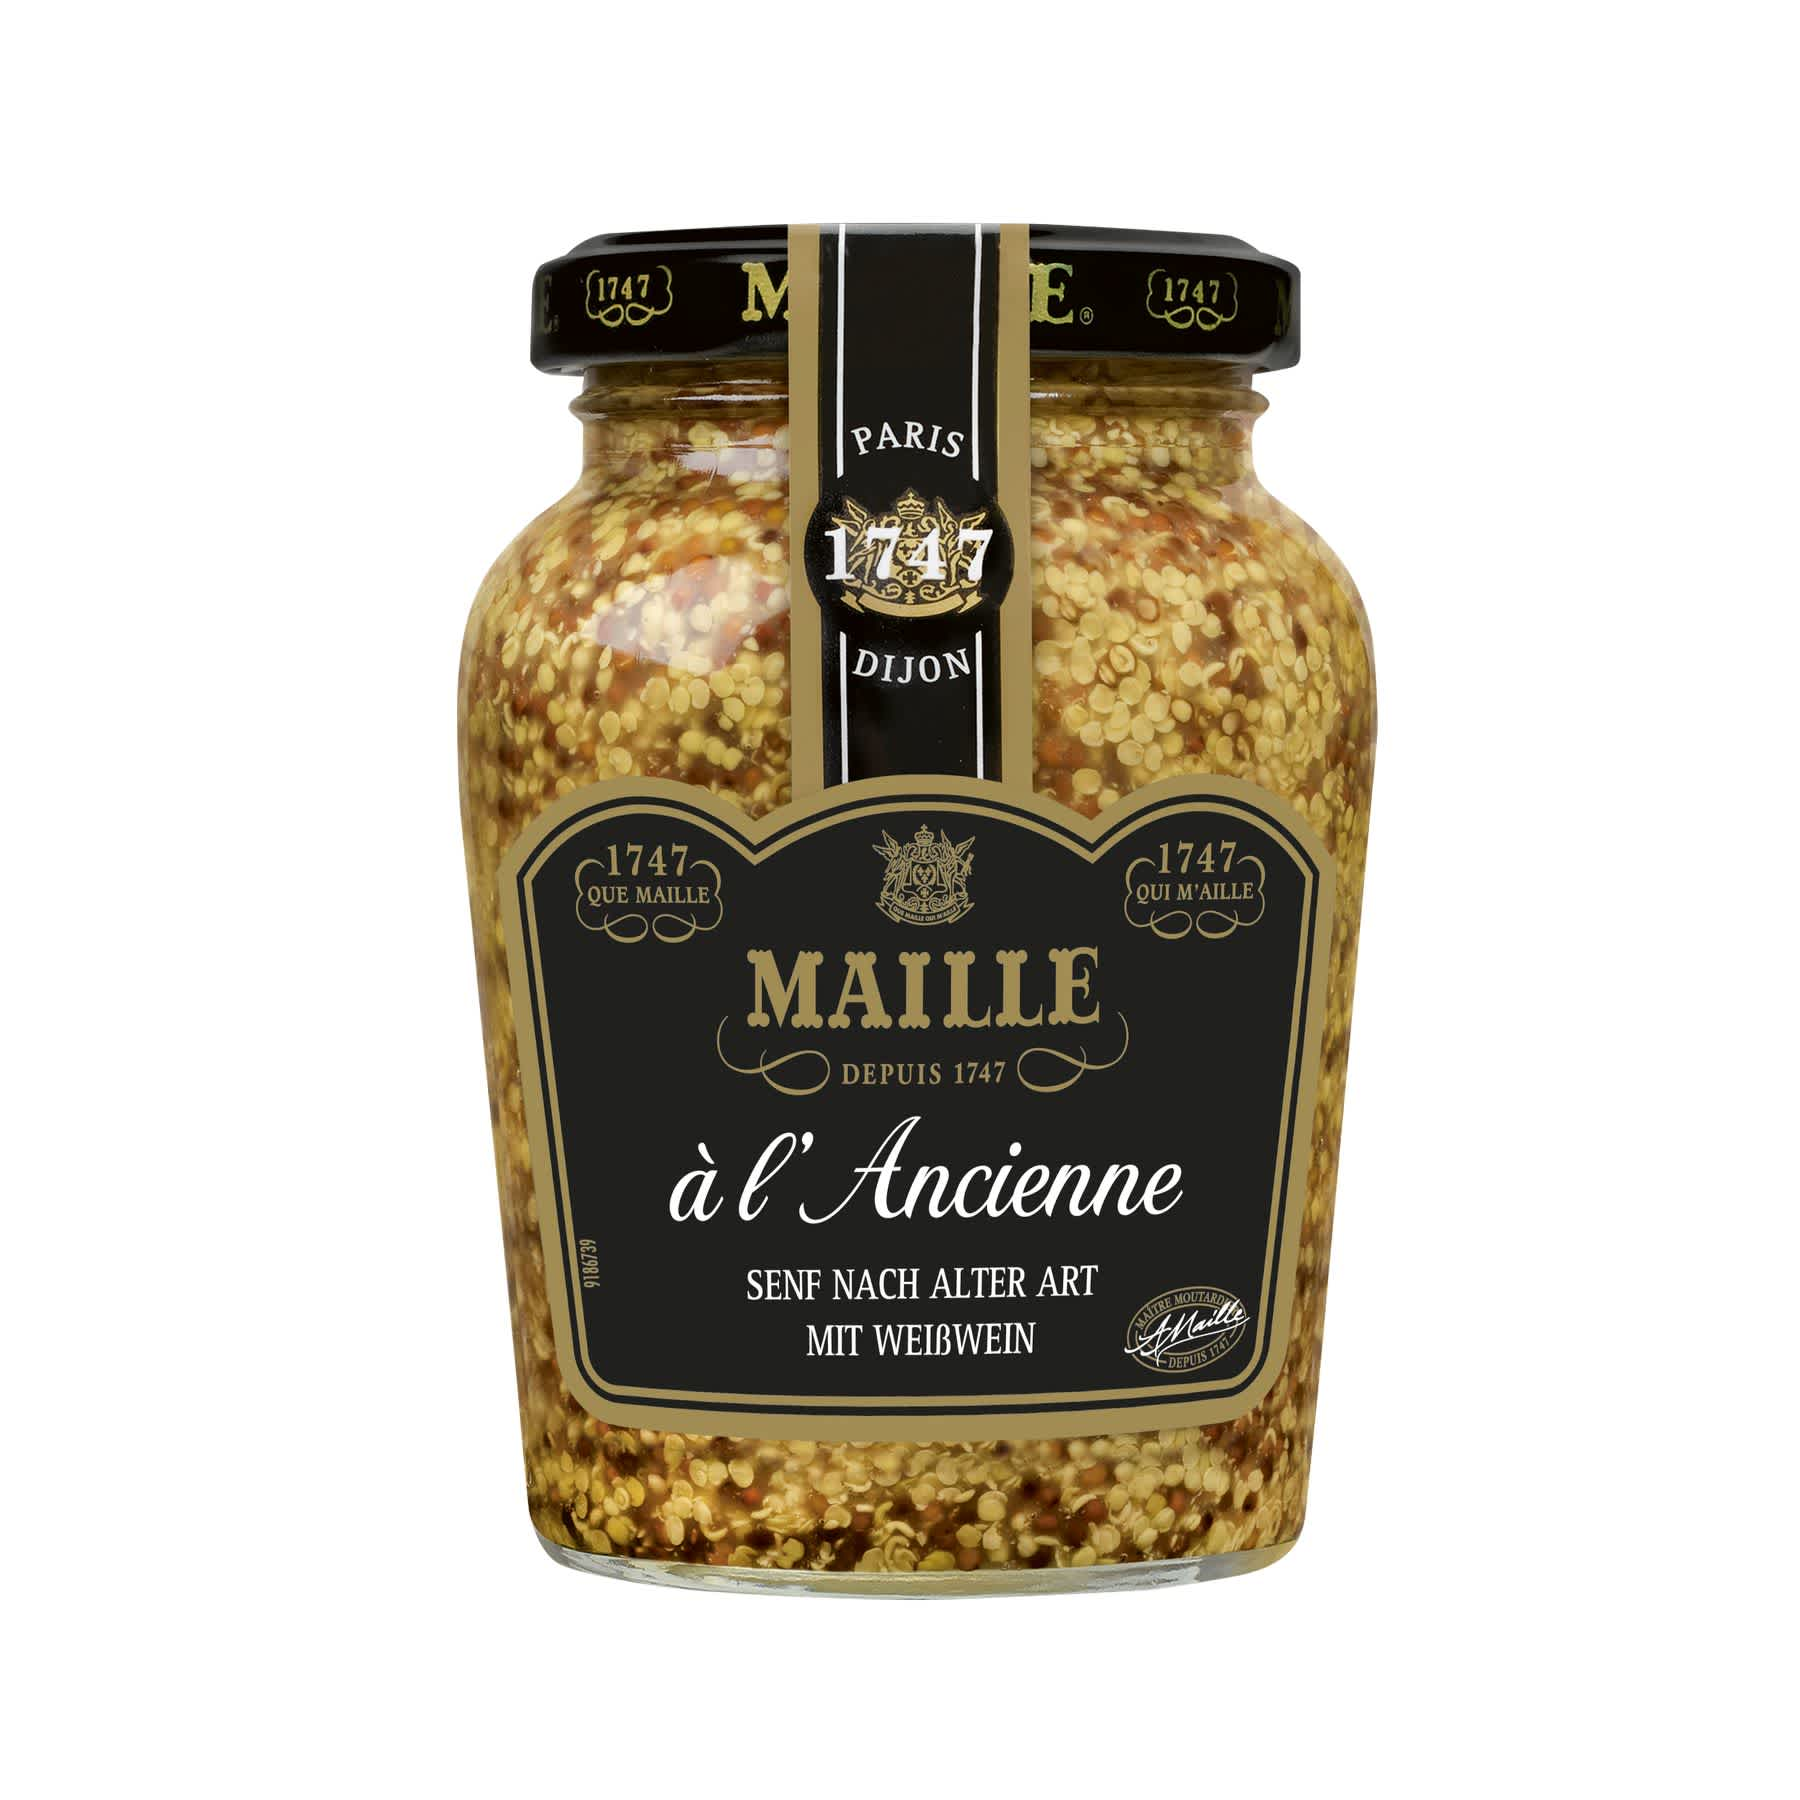 Maille Moutarde a l'Ancienne 210g, overview